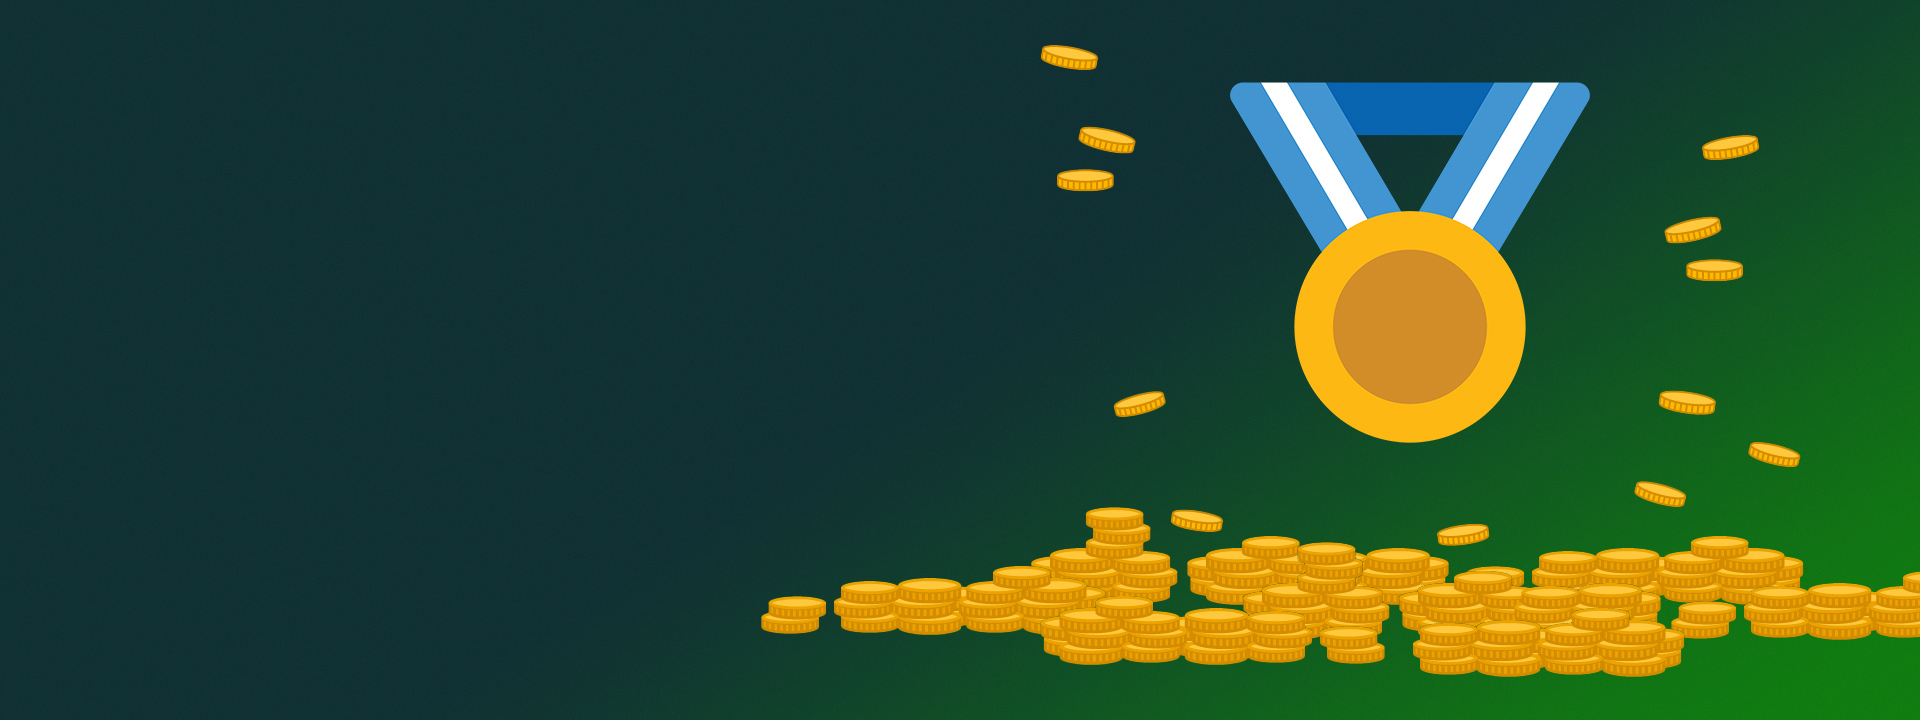 Microsoft Rewards, a gold medal and yellow coins on a green gradient background